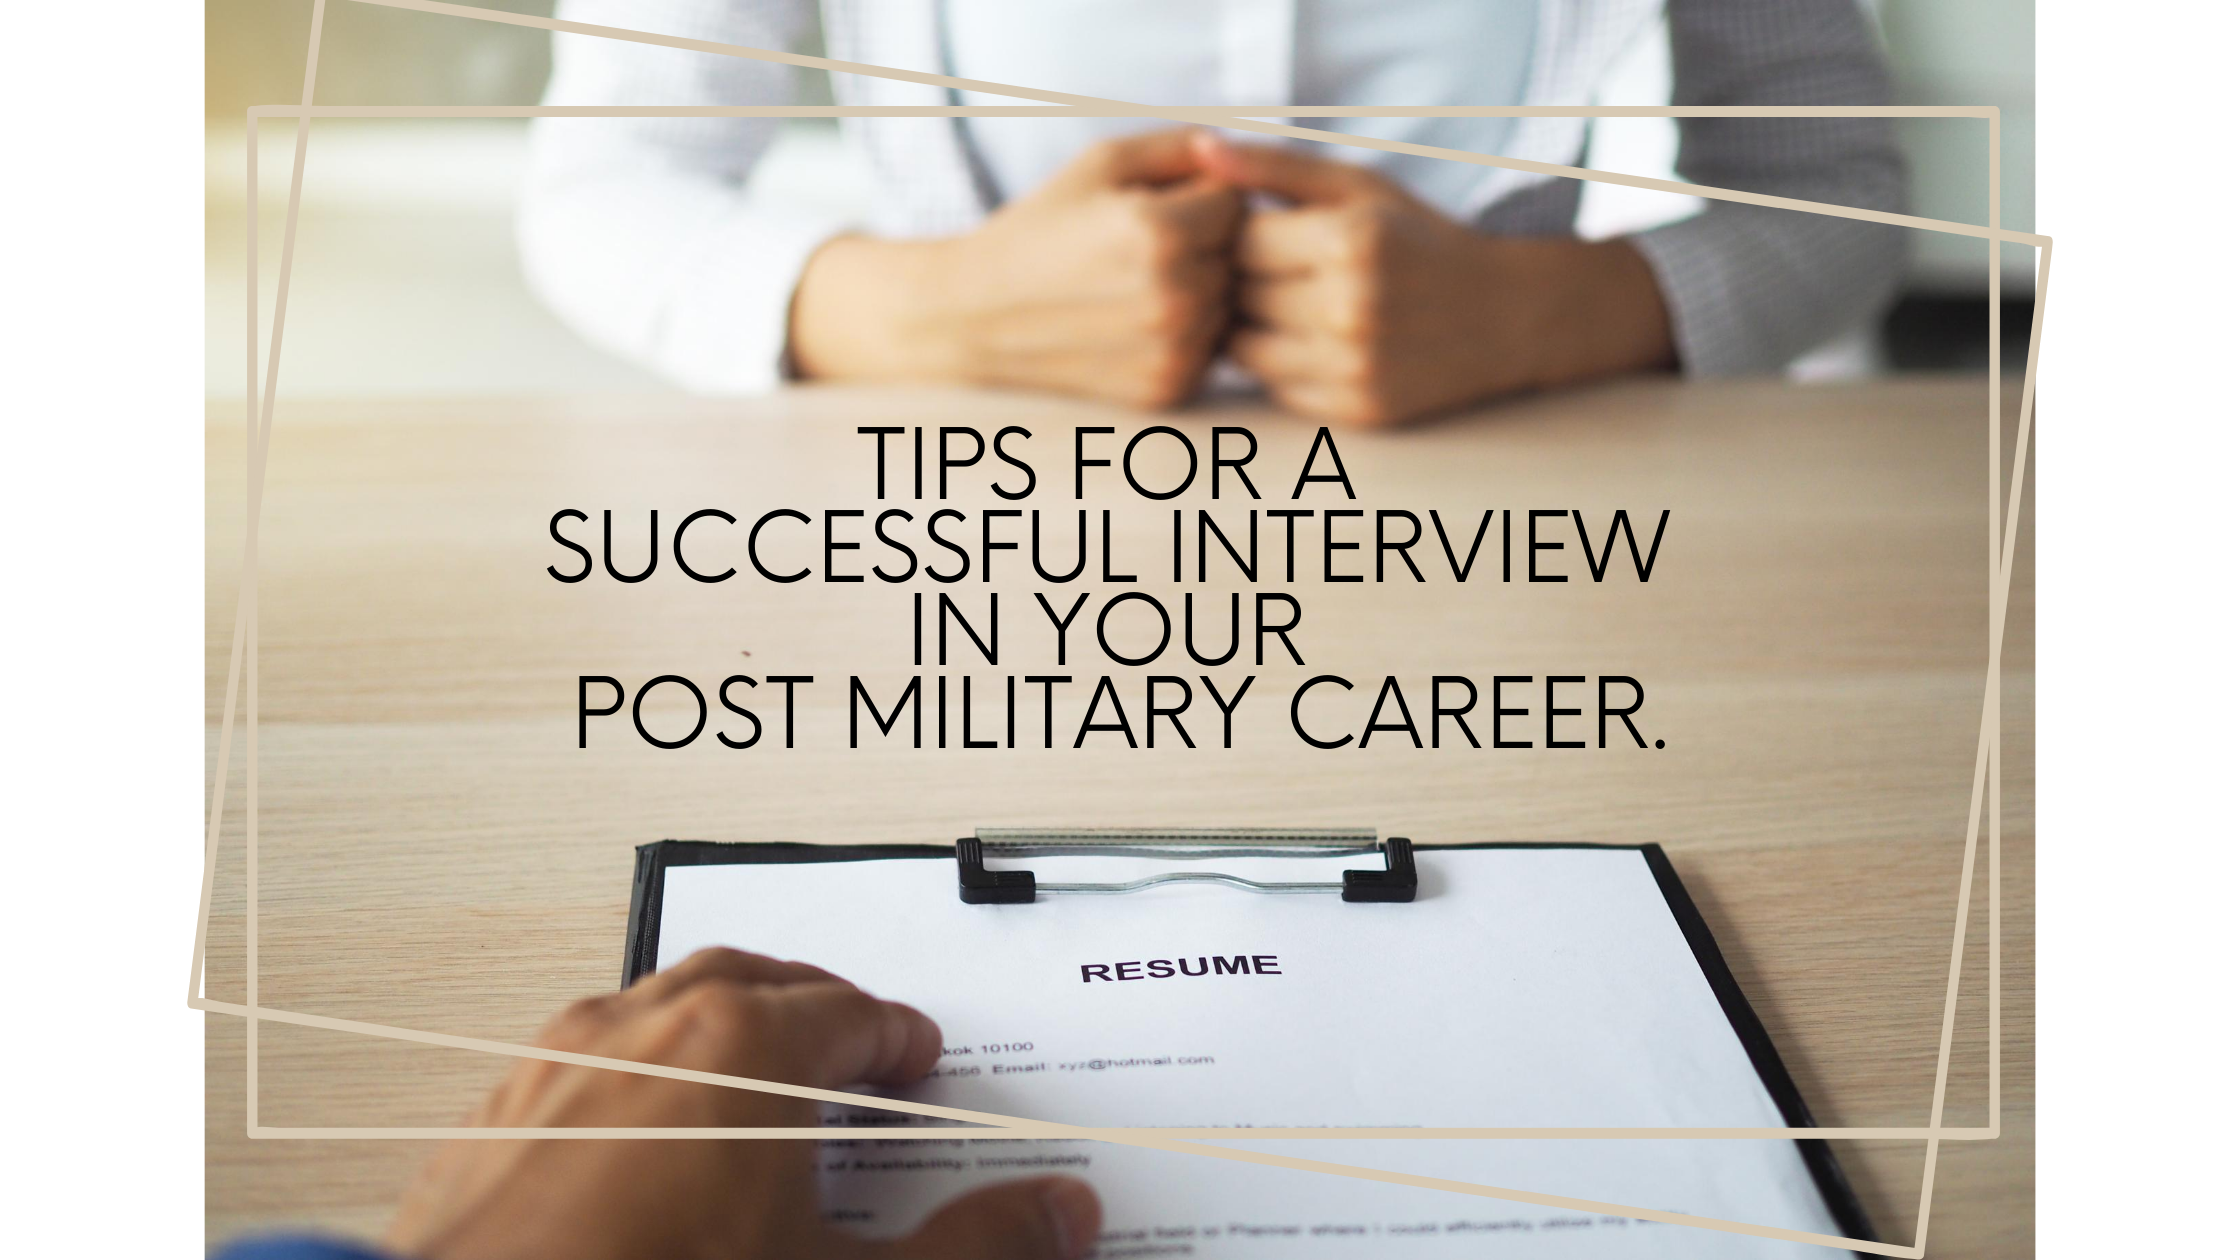 Post Military Job Interview